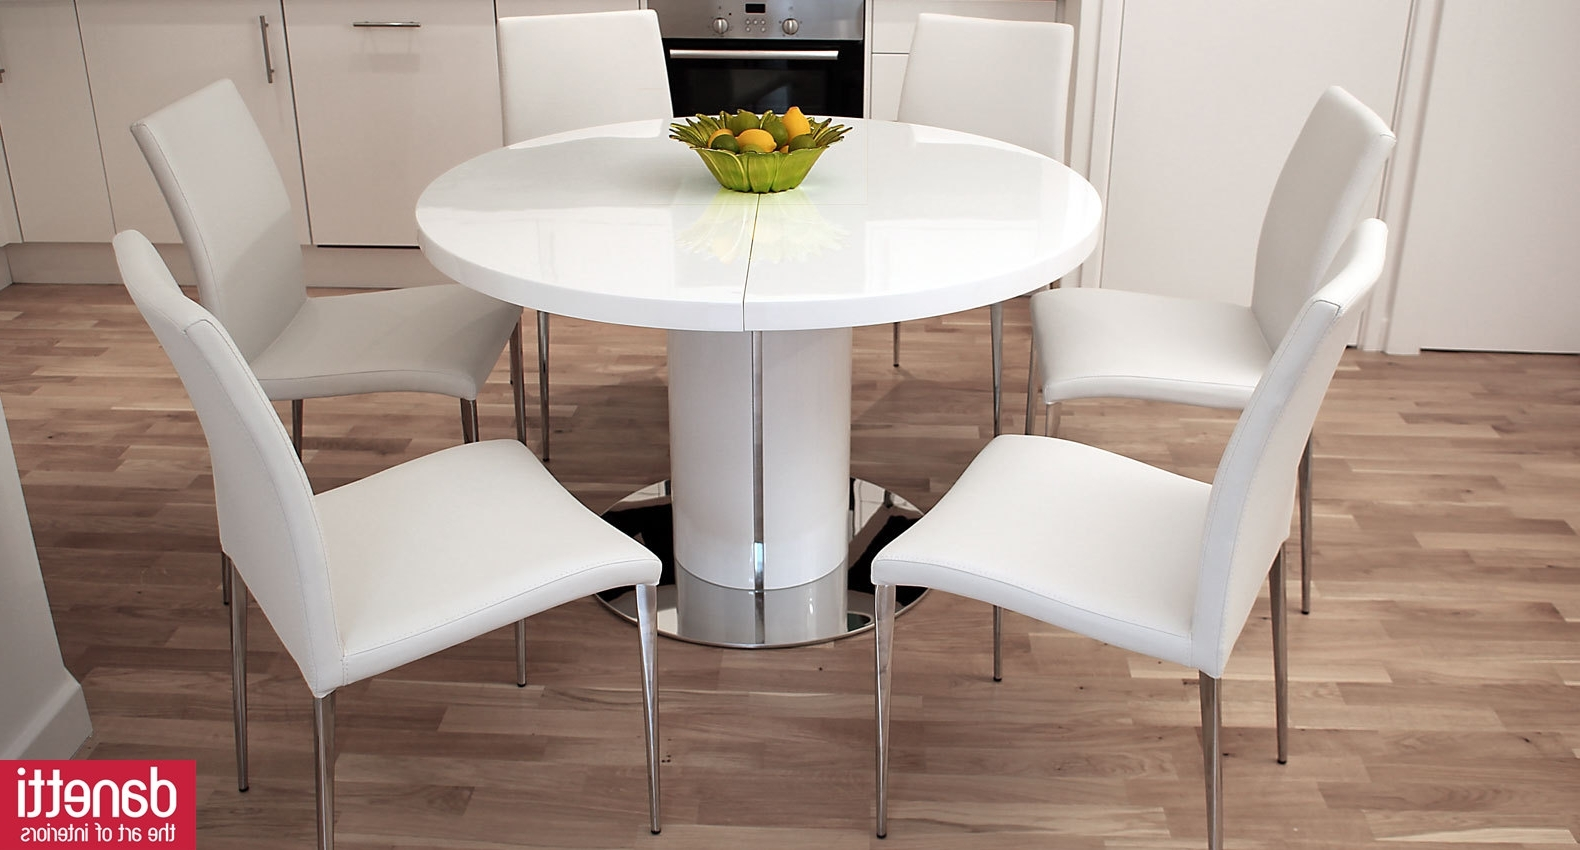 Current White Dining Tables 8 Seater For Dimensions Seats Pedestal Oak Dining Round Set Furniture Ashley (View 9 of 25)